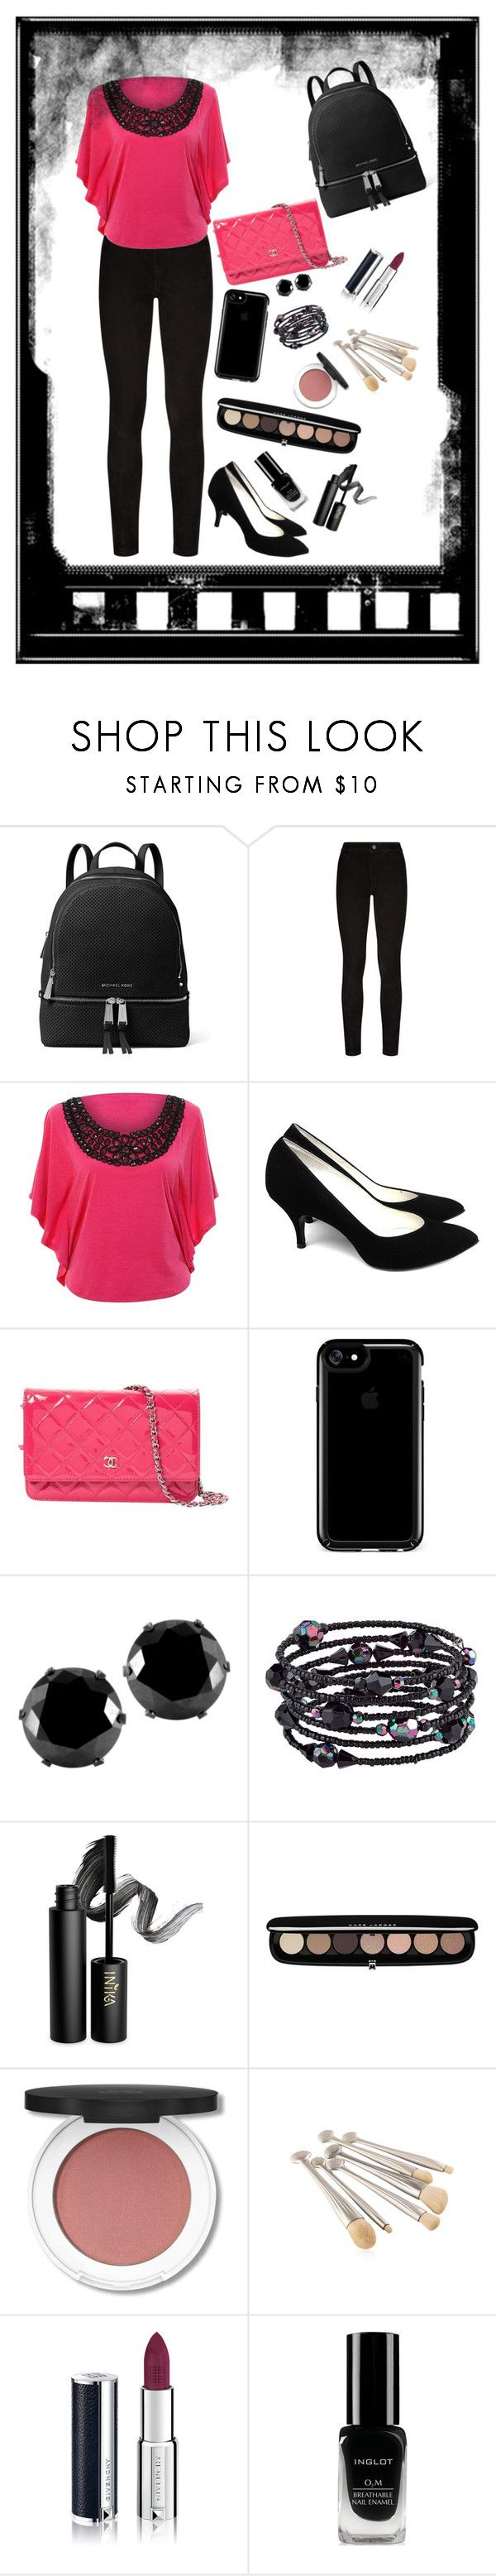 """""""Back To School"""" by princesswaterlily ❤ liked on Polyvore featuring MICHAEL Michael Kors, Paige Denim, jon & anna, Chanel, Speck, West Coast Jewelry, 1928, INIKA, Marc Jacobs and Givenchy"""